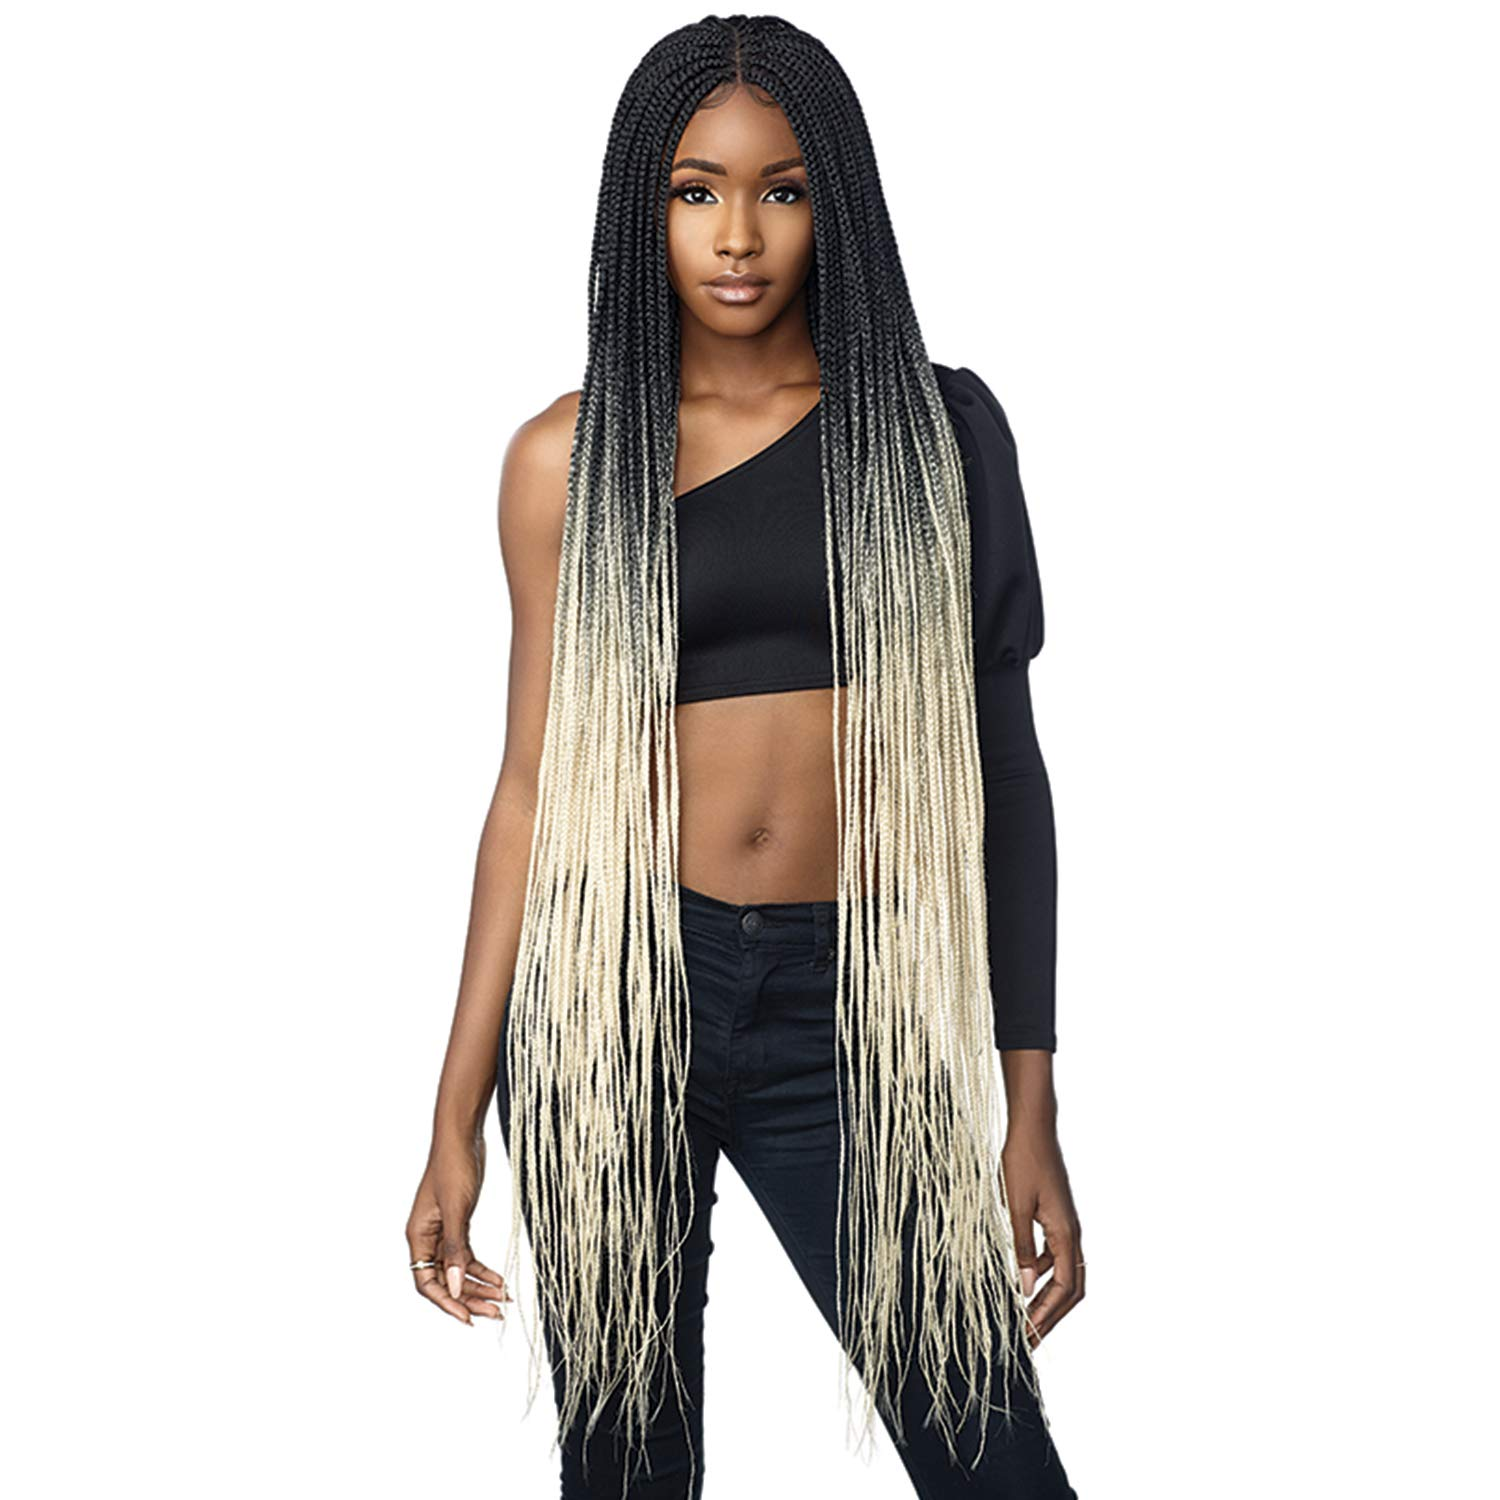 Sensationnel Special Campaign Cloud 9 Synthetic Hair Max 57% OFF 4x4 Swiss Lace Parting